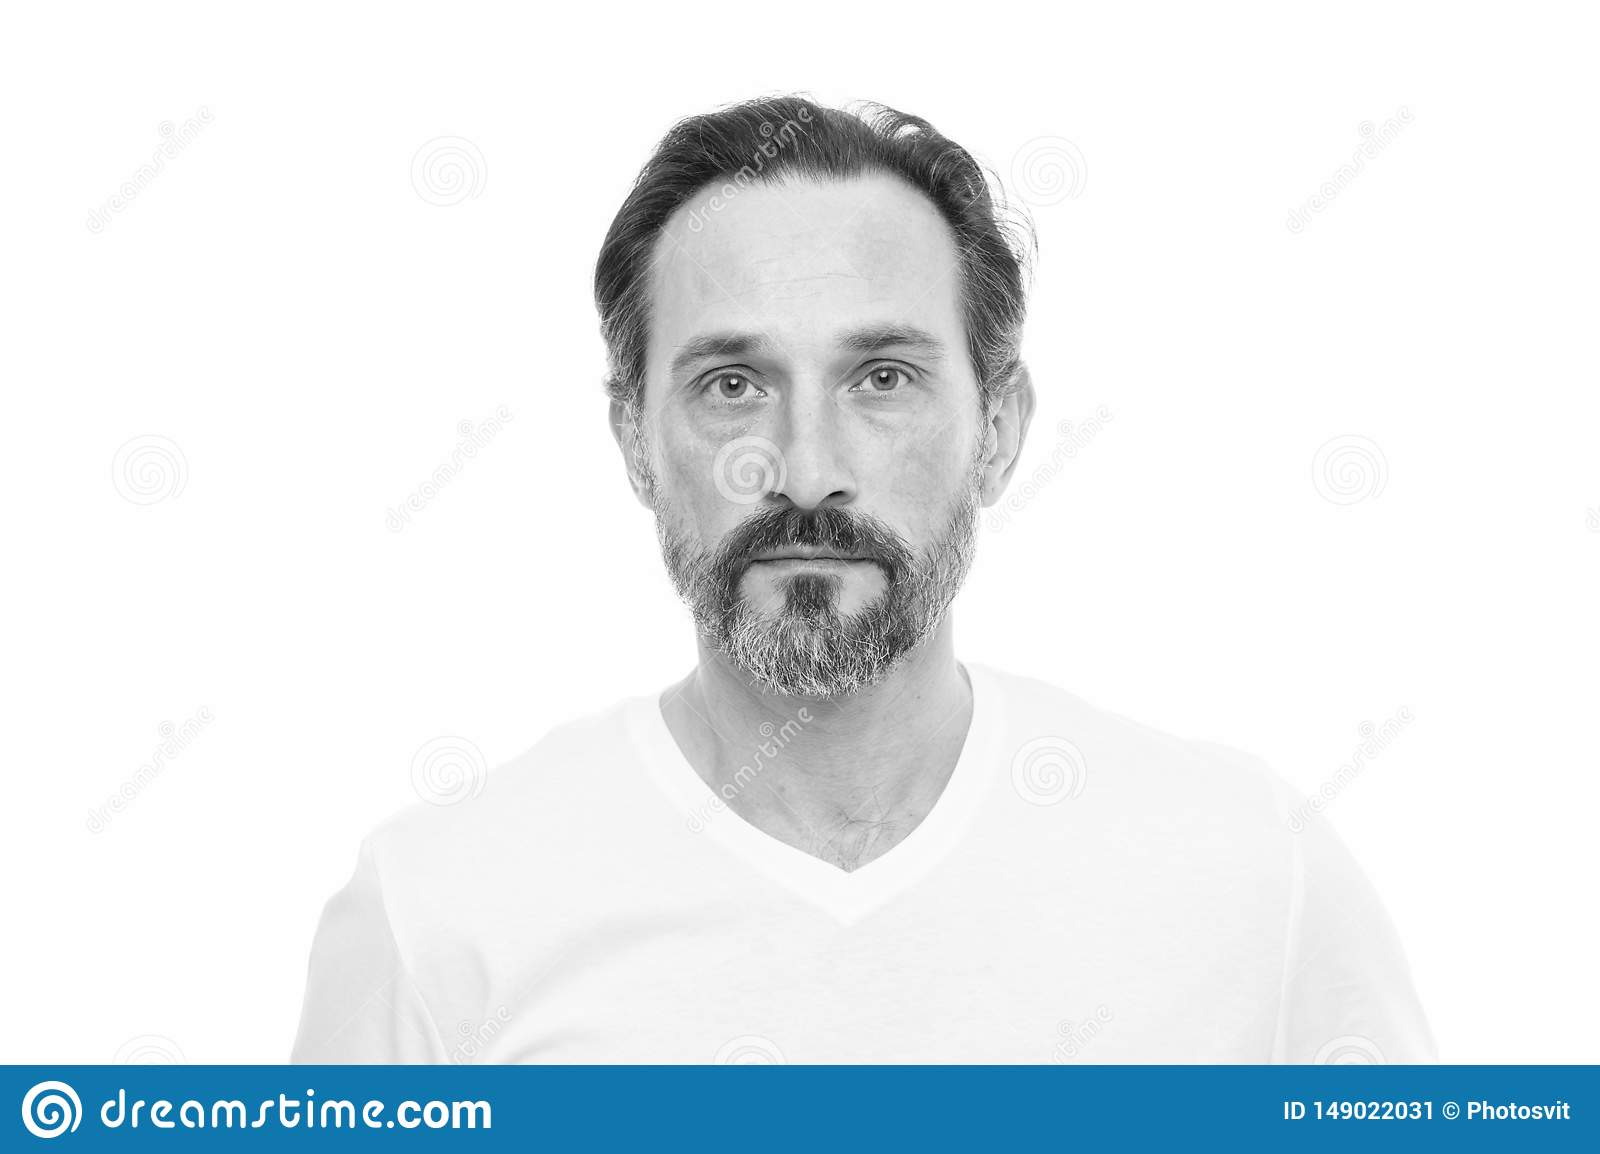 Man bearded guy with mustache white background. Facial hair grooming guide. Hipster handsome bearded attractive guy